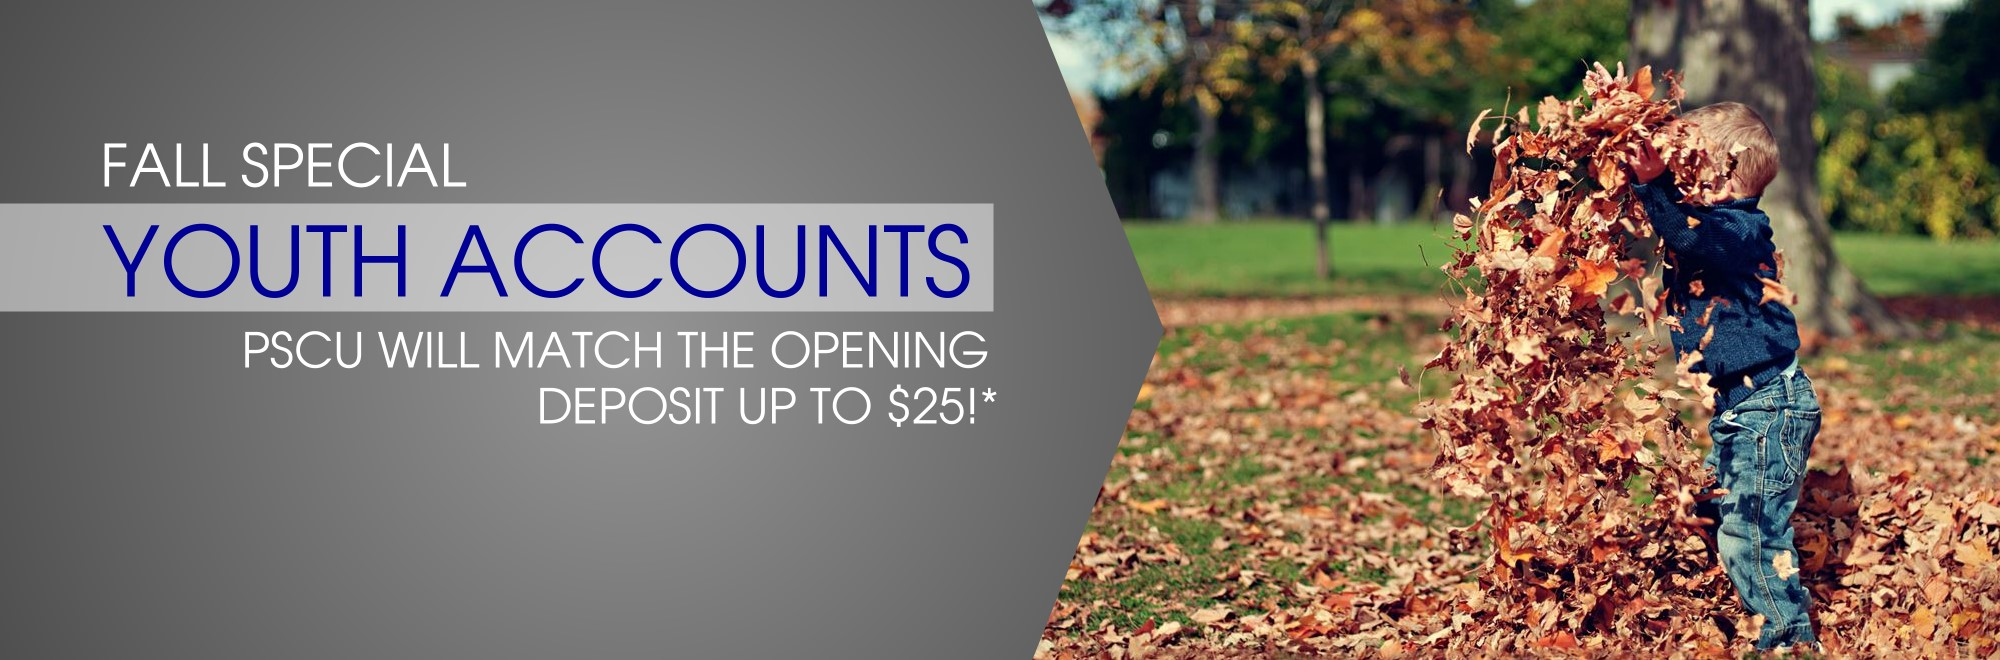 Fall Special Youth Accounts Open a Youth account in October and PSCU will match the opening deposit up to $25